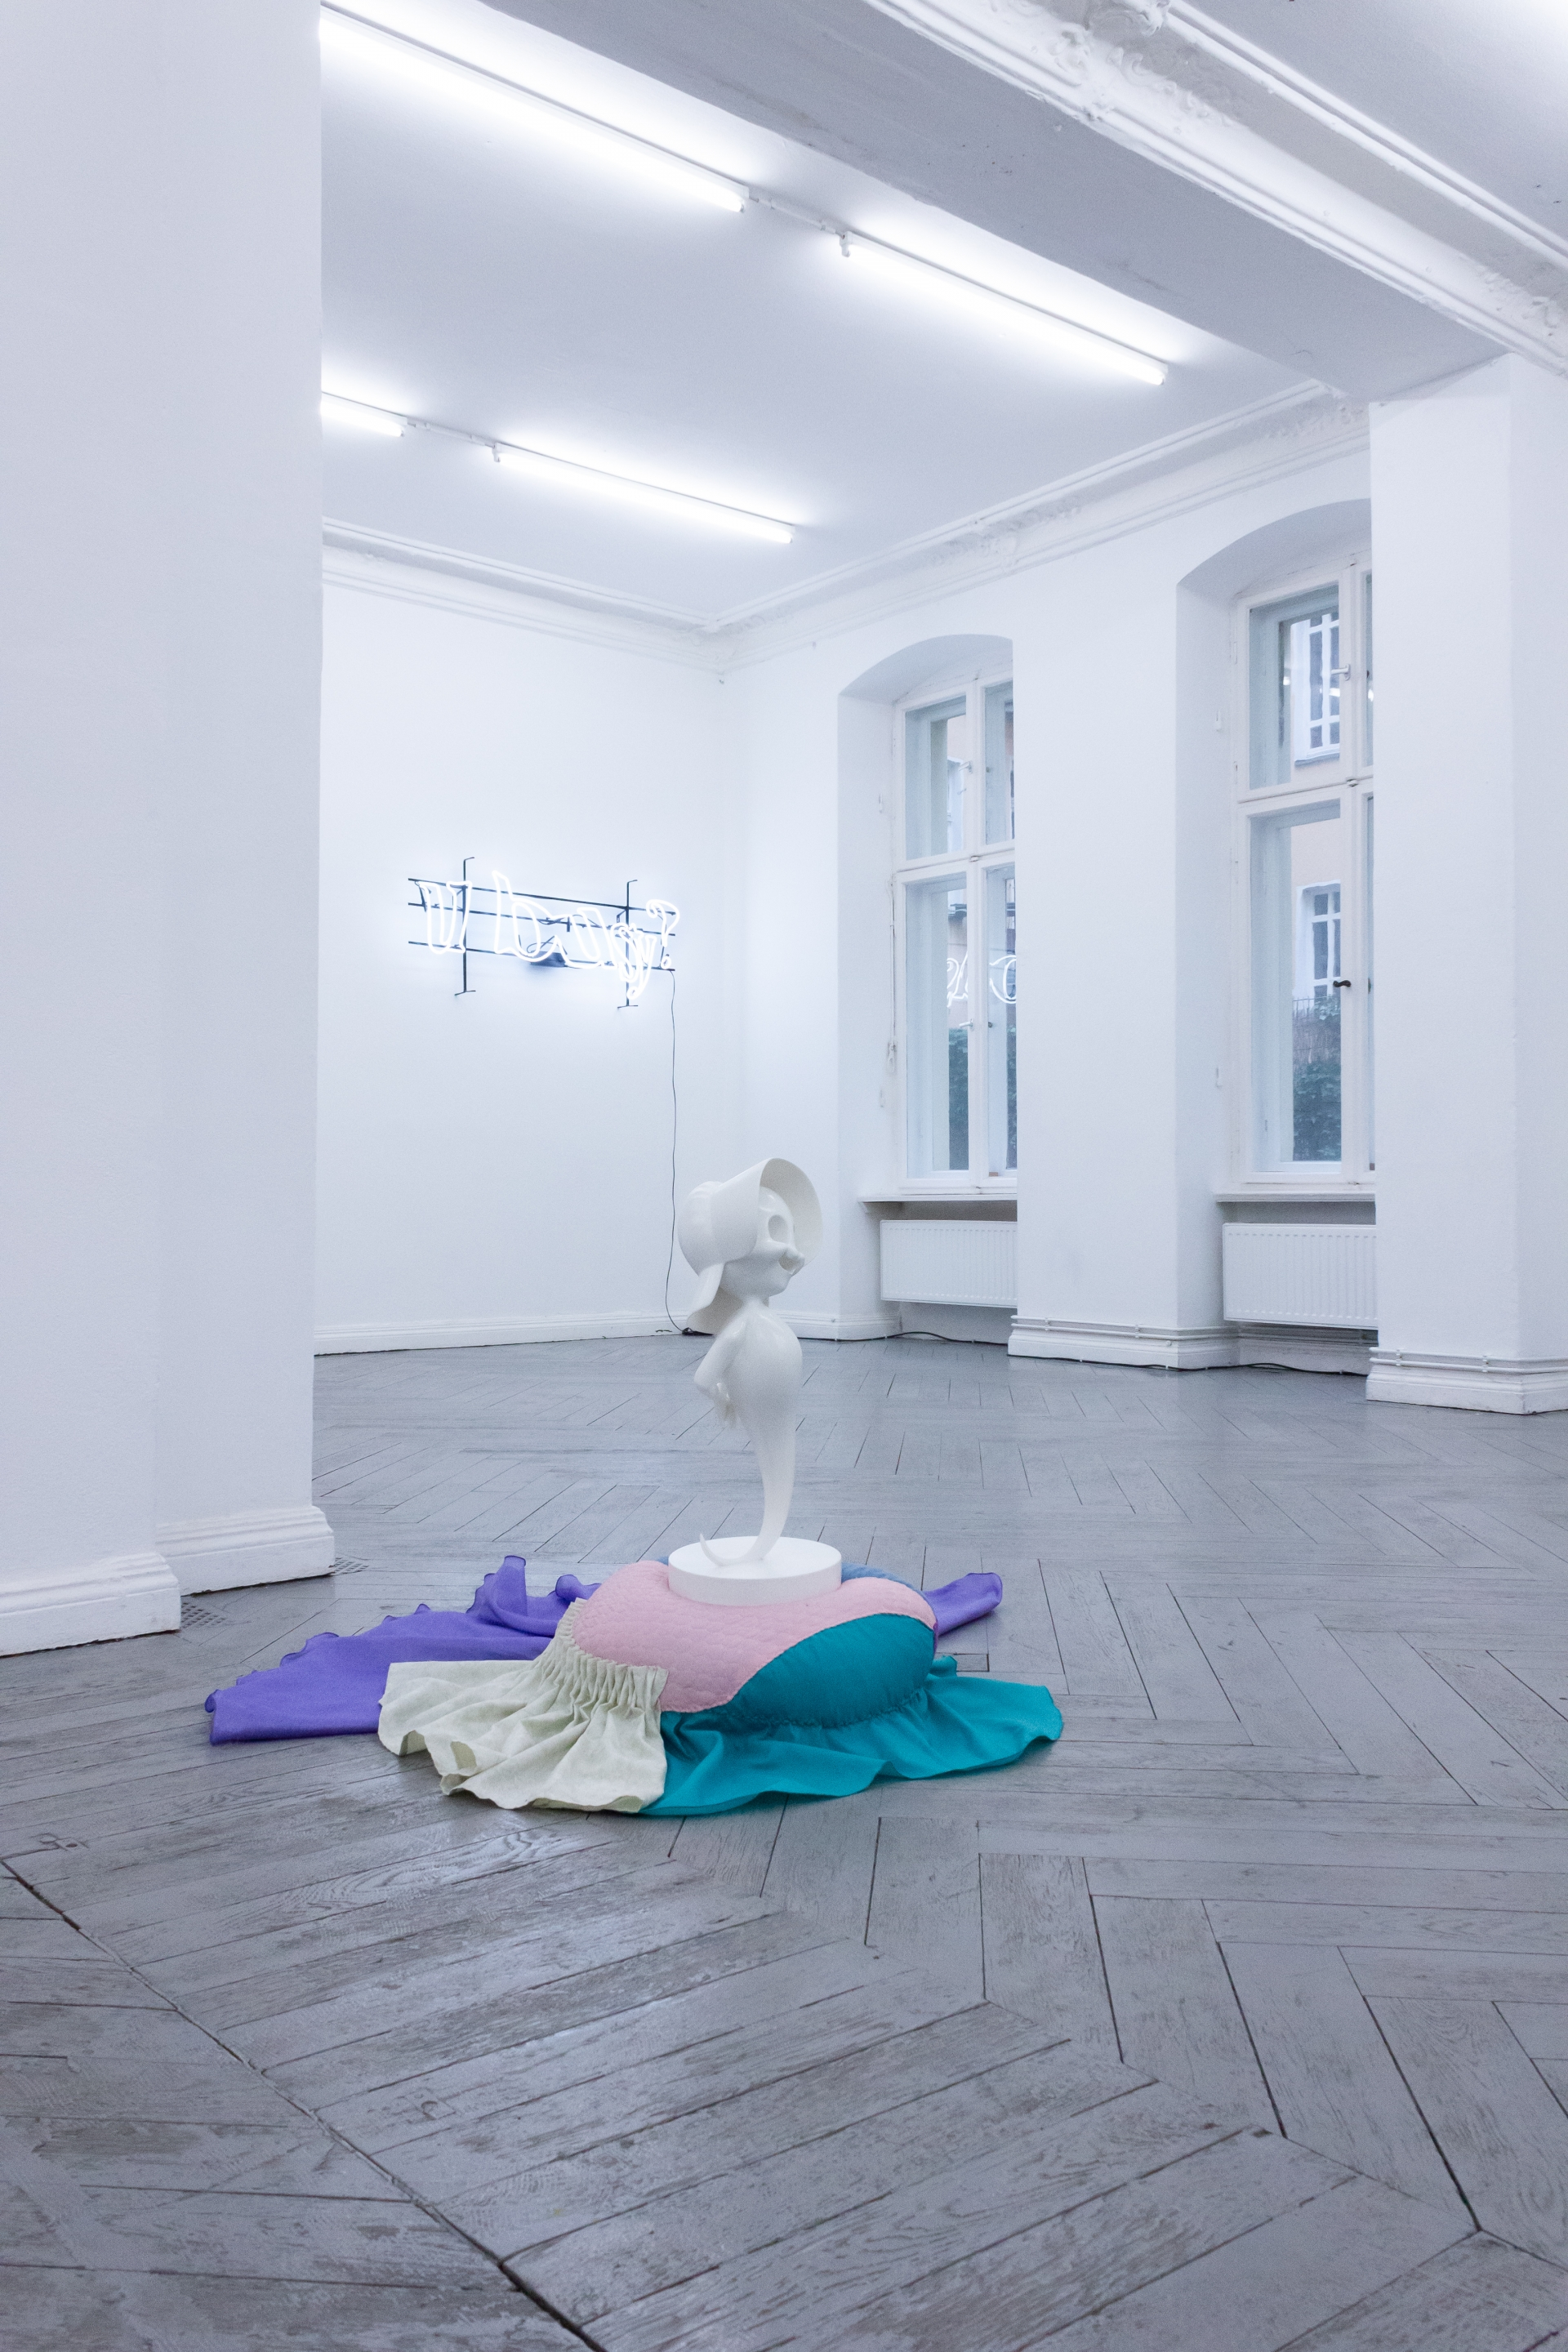 ANNKATHRIN KLUSS Souvenirs of Pasts